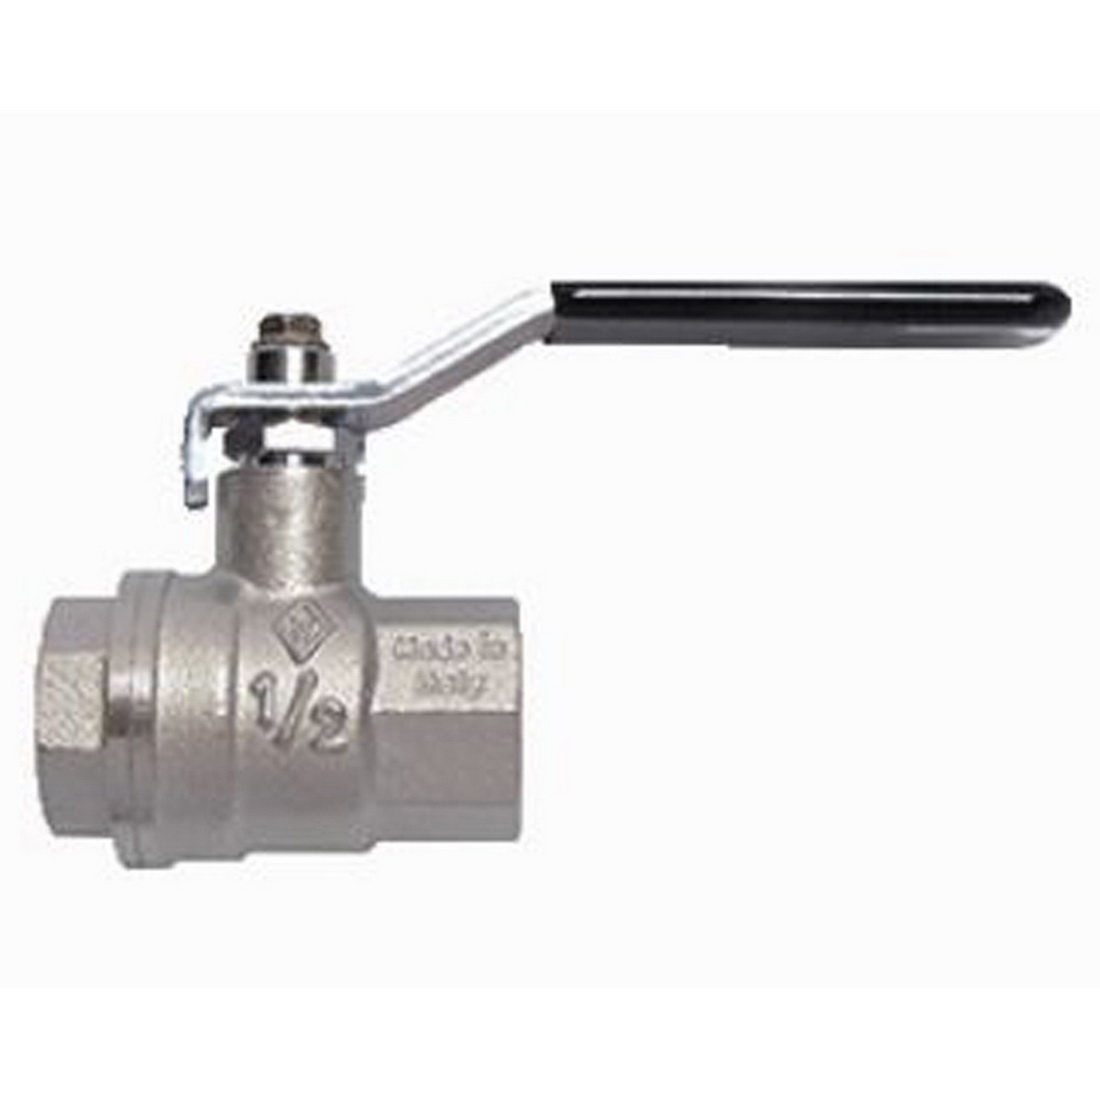 O8 Series Full Flow Ball Valve 20mm Female x Female Water 580psi Long Handle Brass Nickel